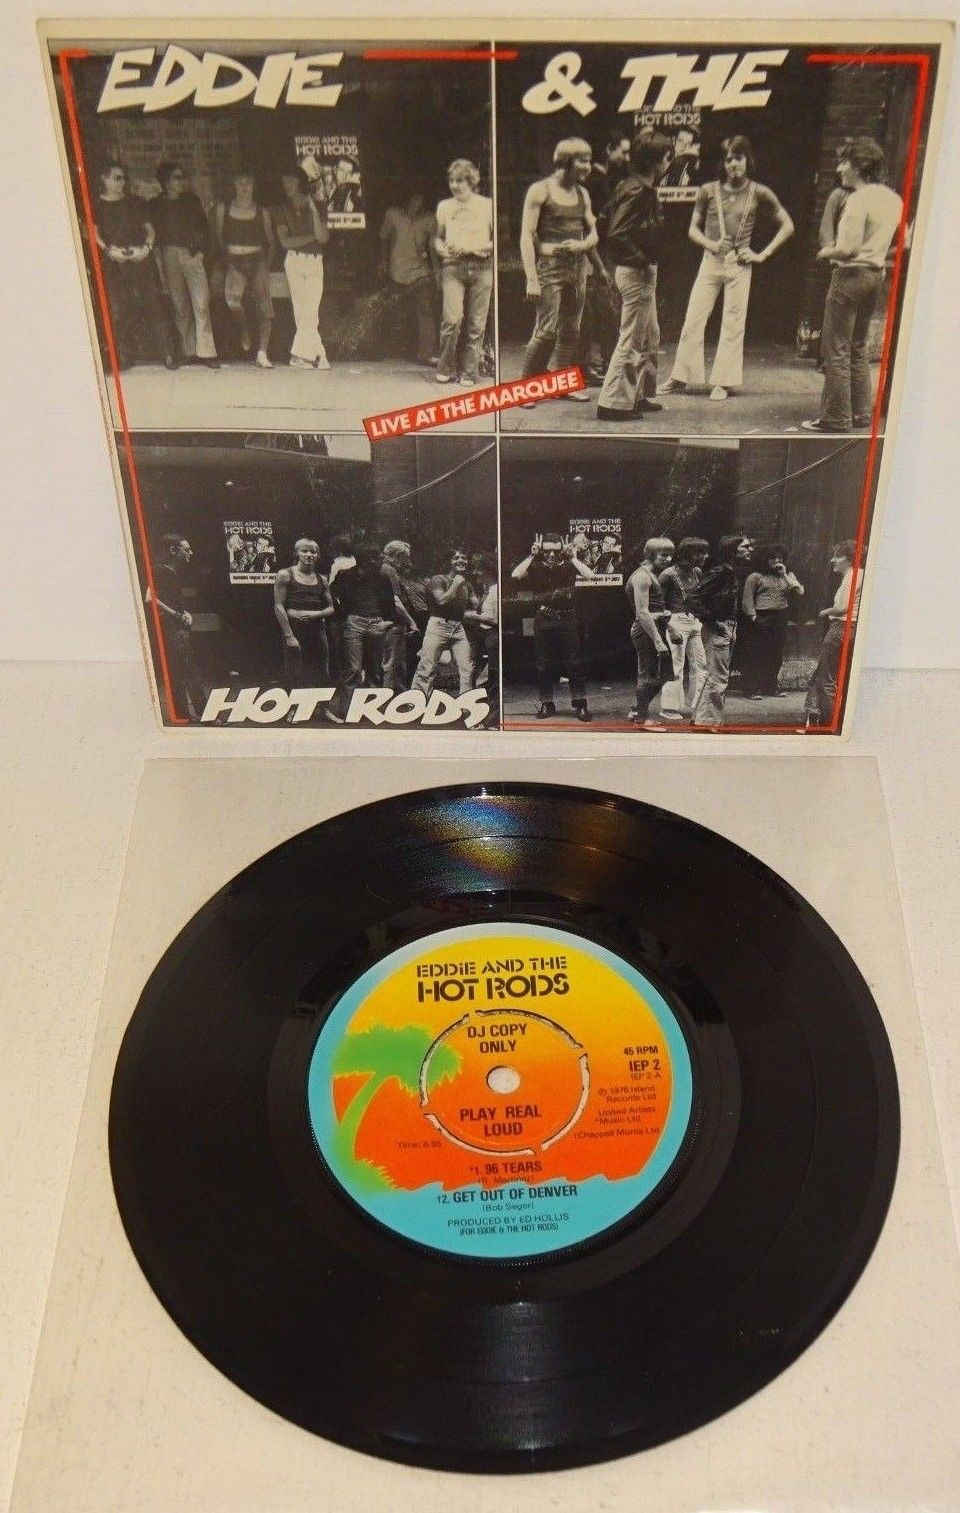 "EDDIE AND THE HOT RODS LIVE AT THE MARQUEE EP 1976 ISLAND UK 7"" 1st DJ Copy. P/S"